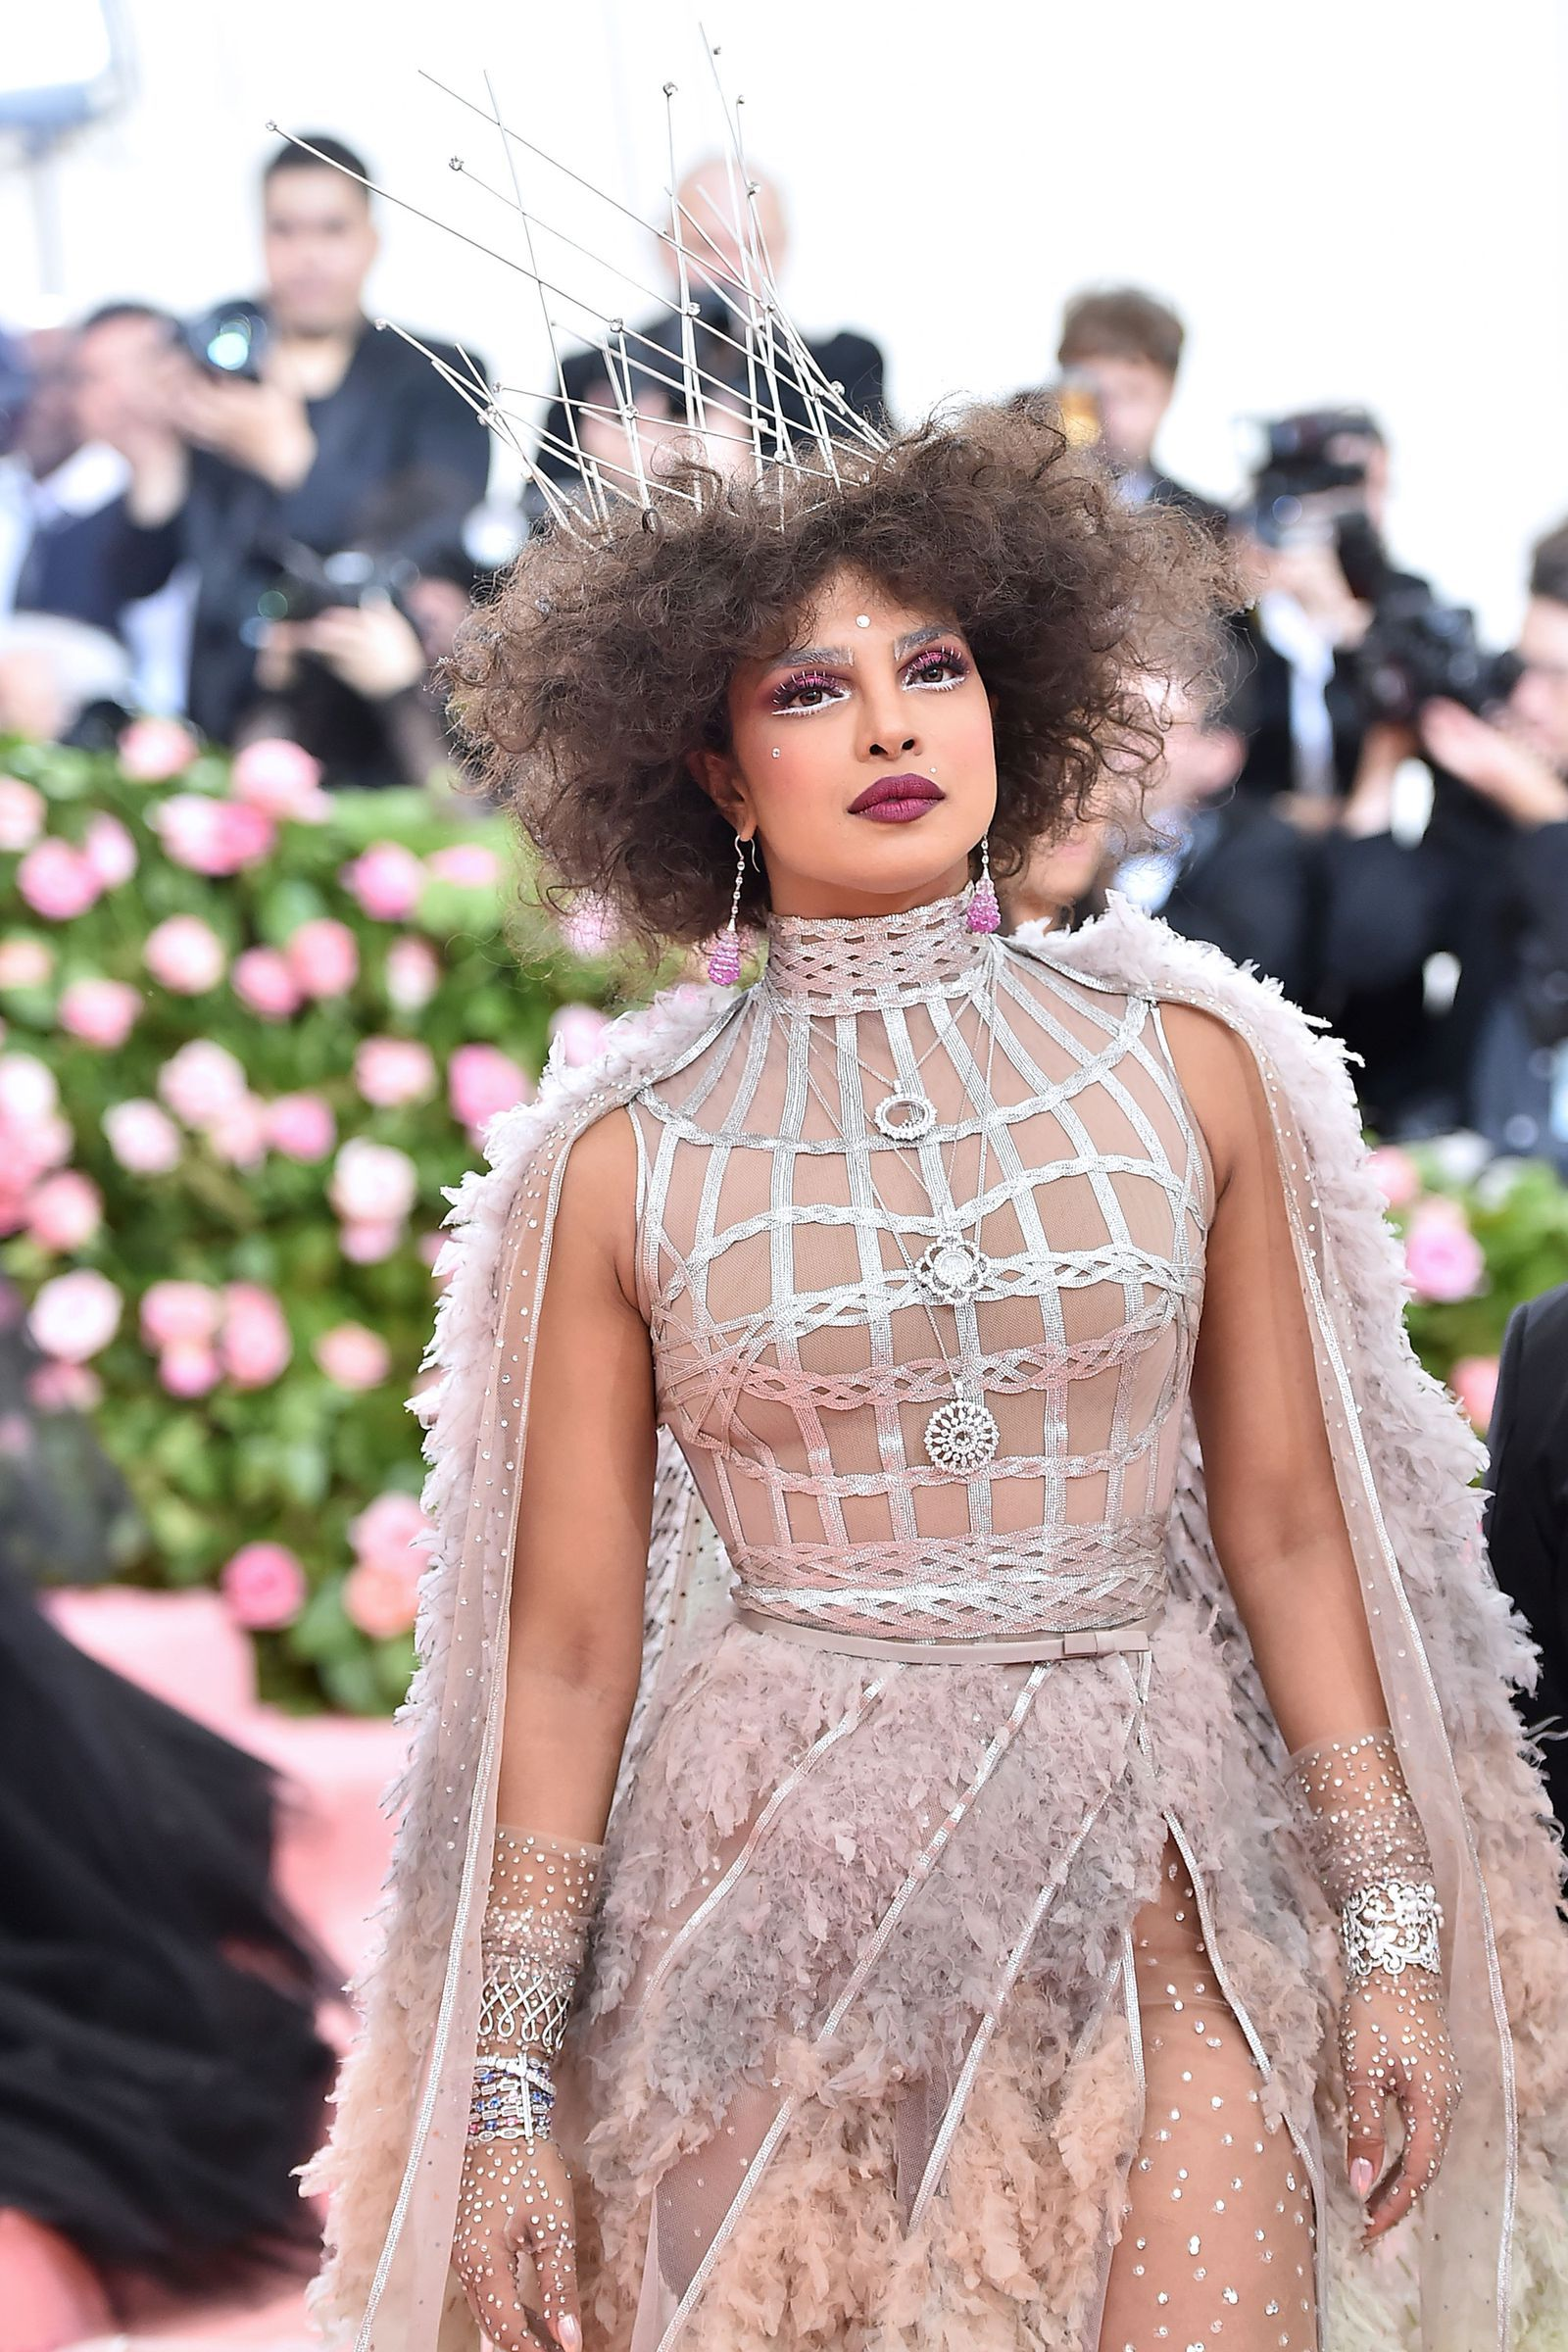 Priyanka Chopra S Met Gala Dress Took 1500 Hours To Create Met Gala Dresses Gala Dresses Met Gala